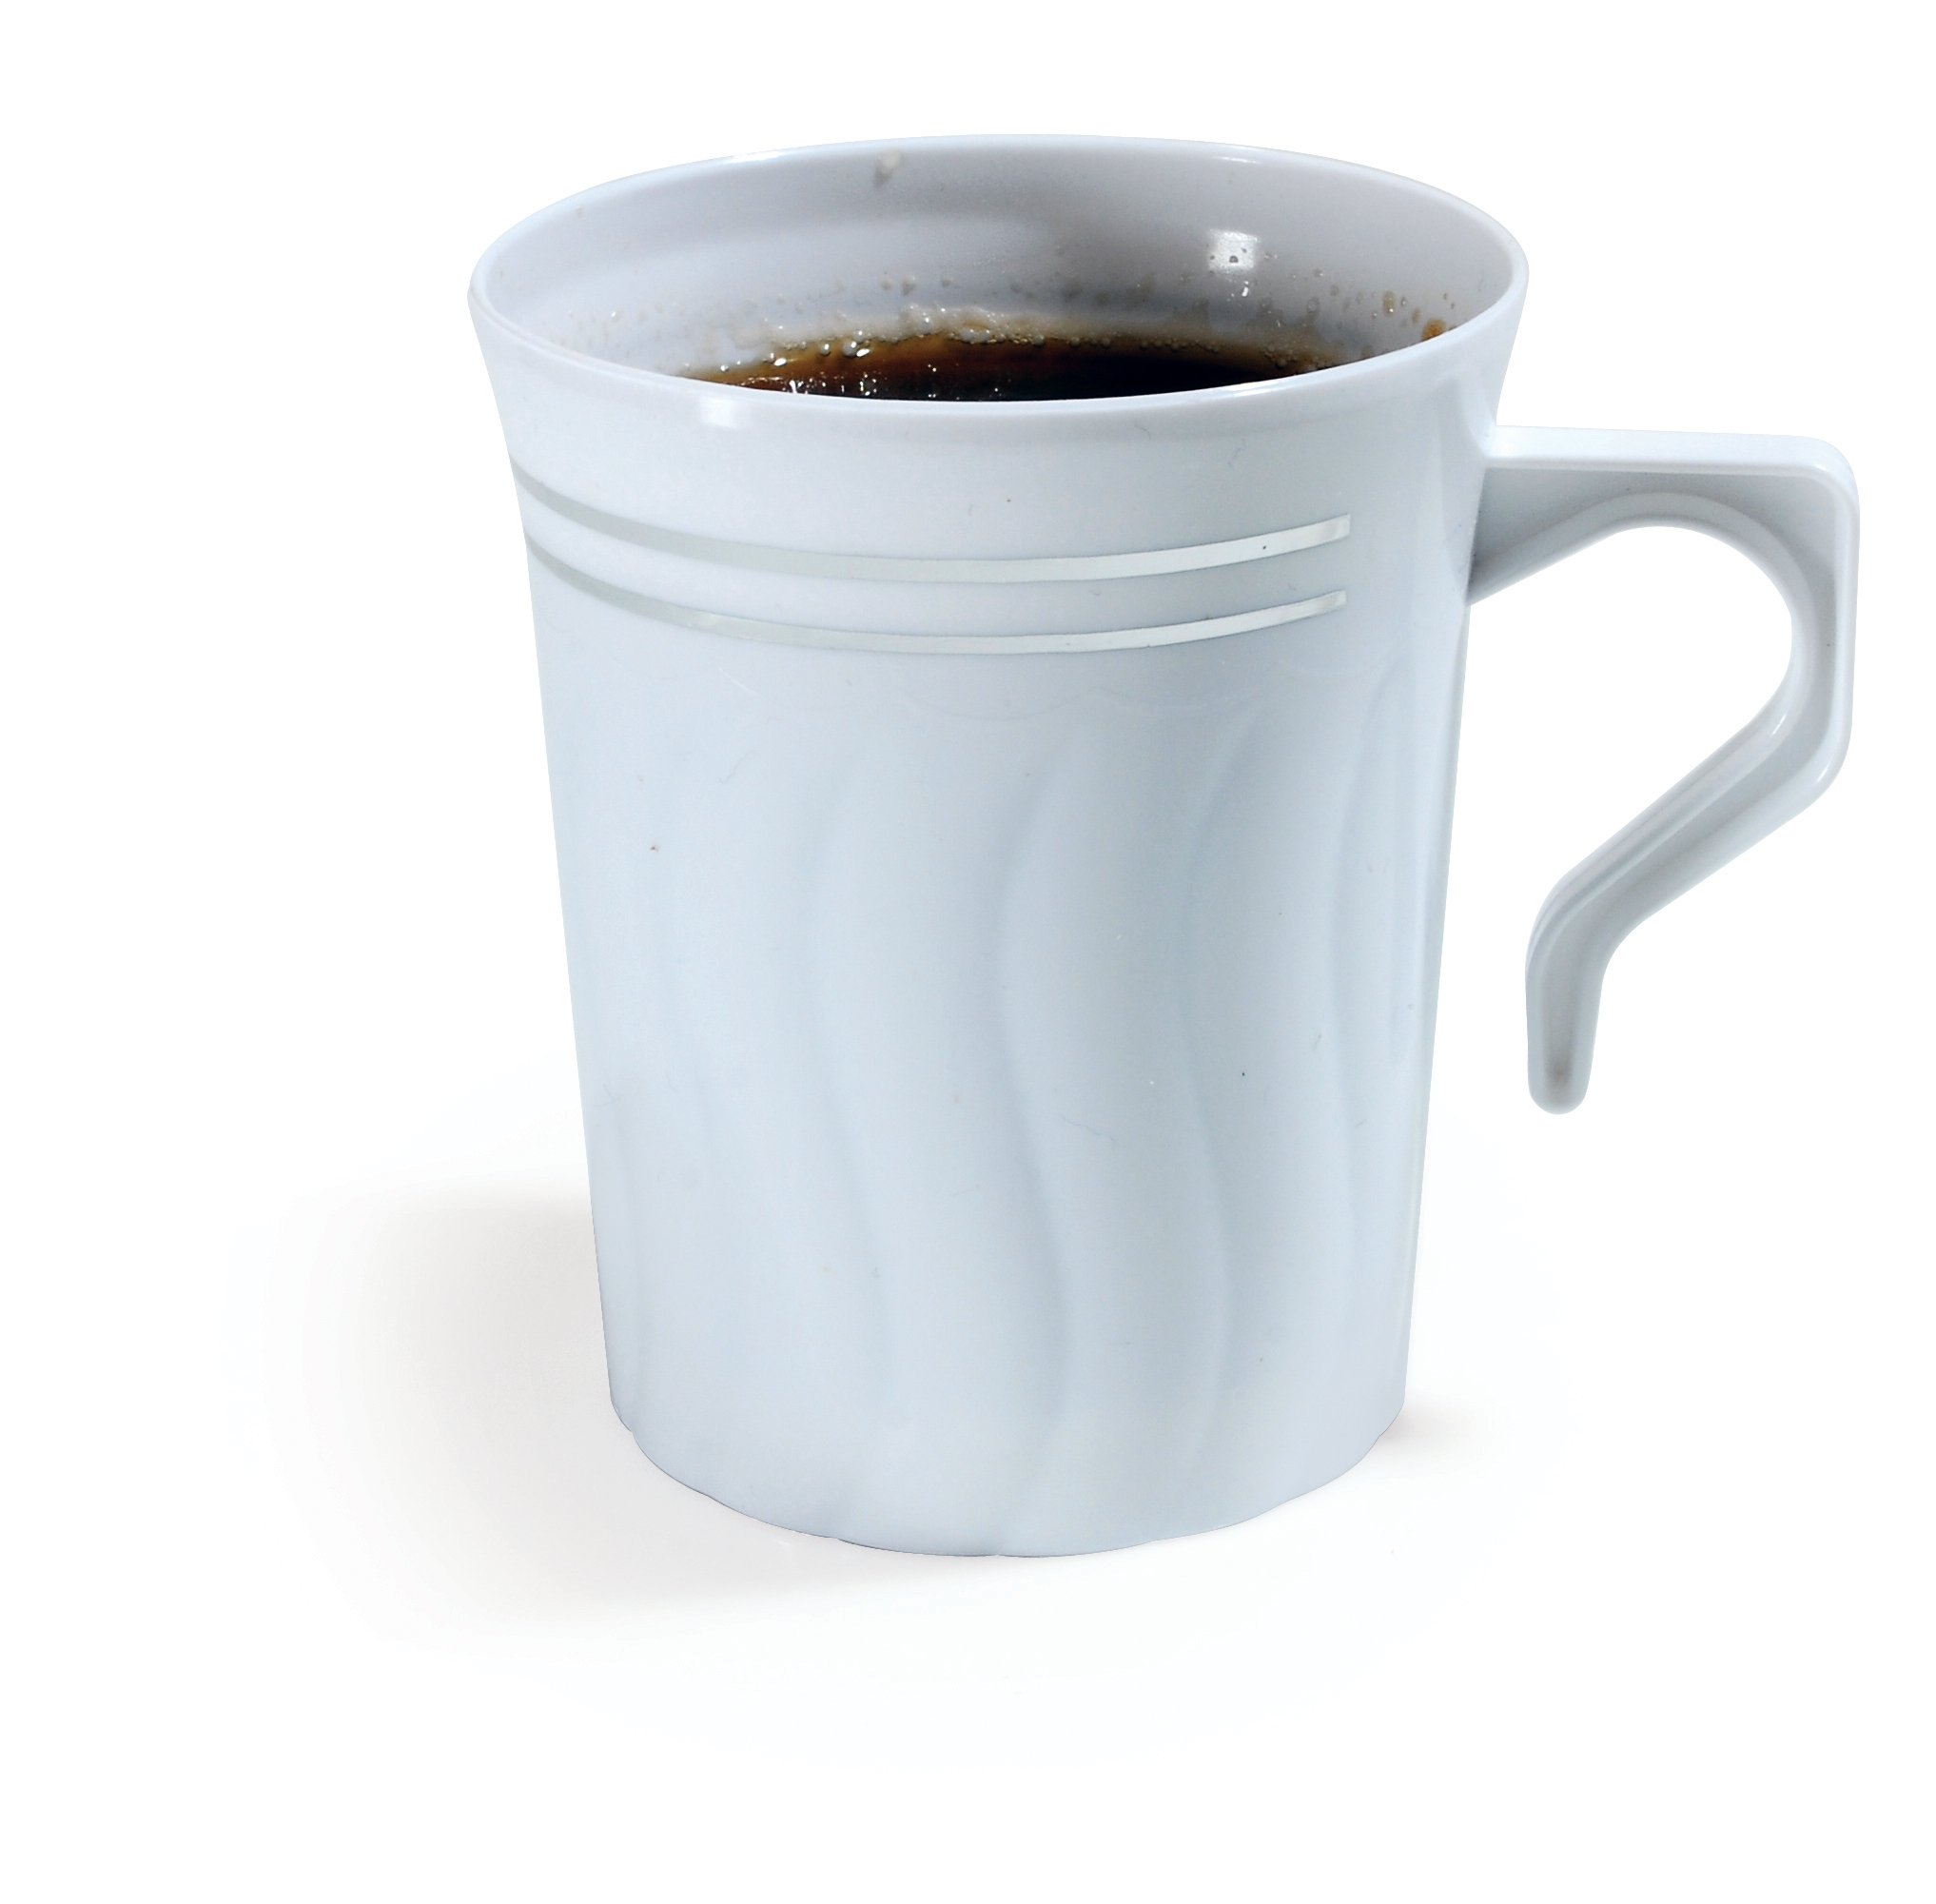 Flairware Collection Pack of 8 Drinkware | White 8 oz FineLine Settings Coffee Mugs